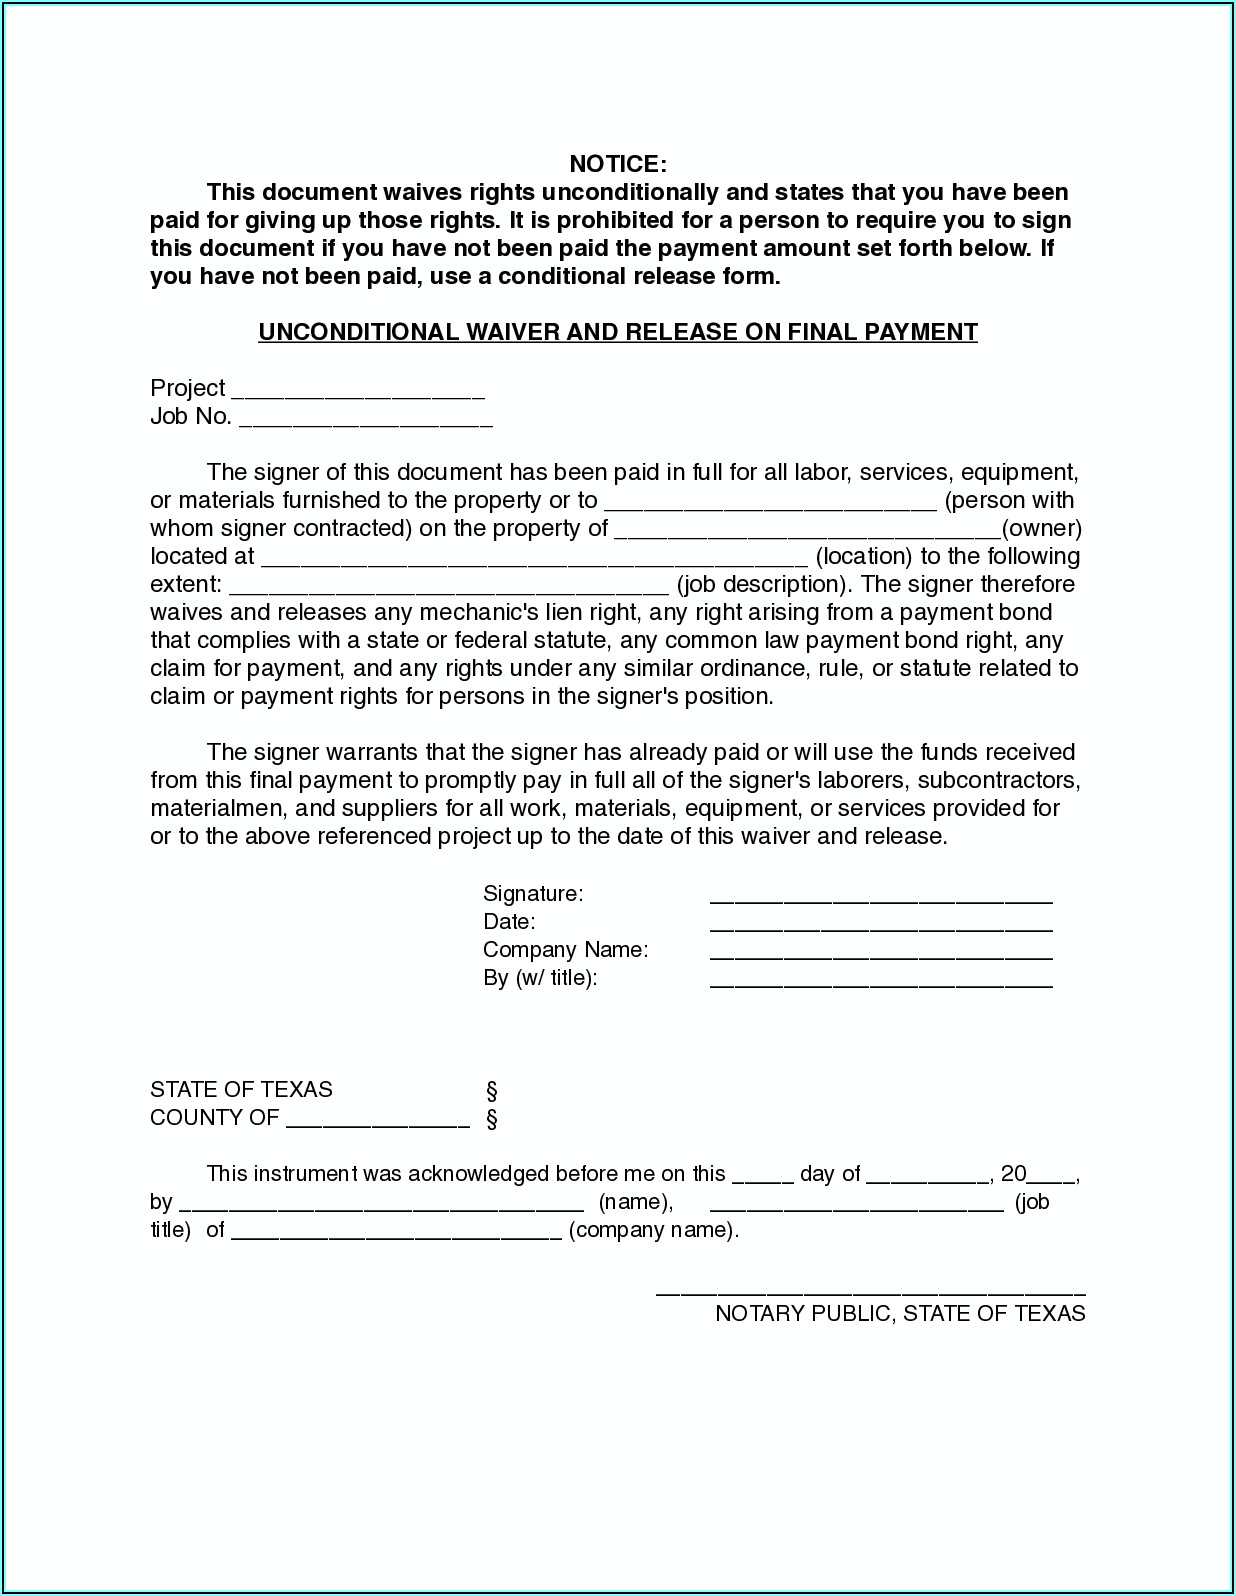 Divorce Fee Waiver Form Texas Pdf